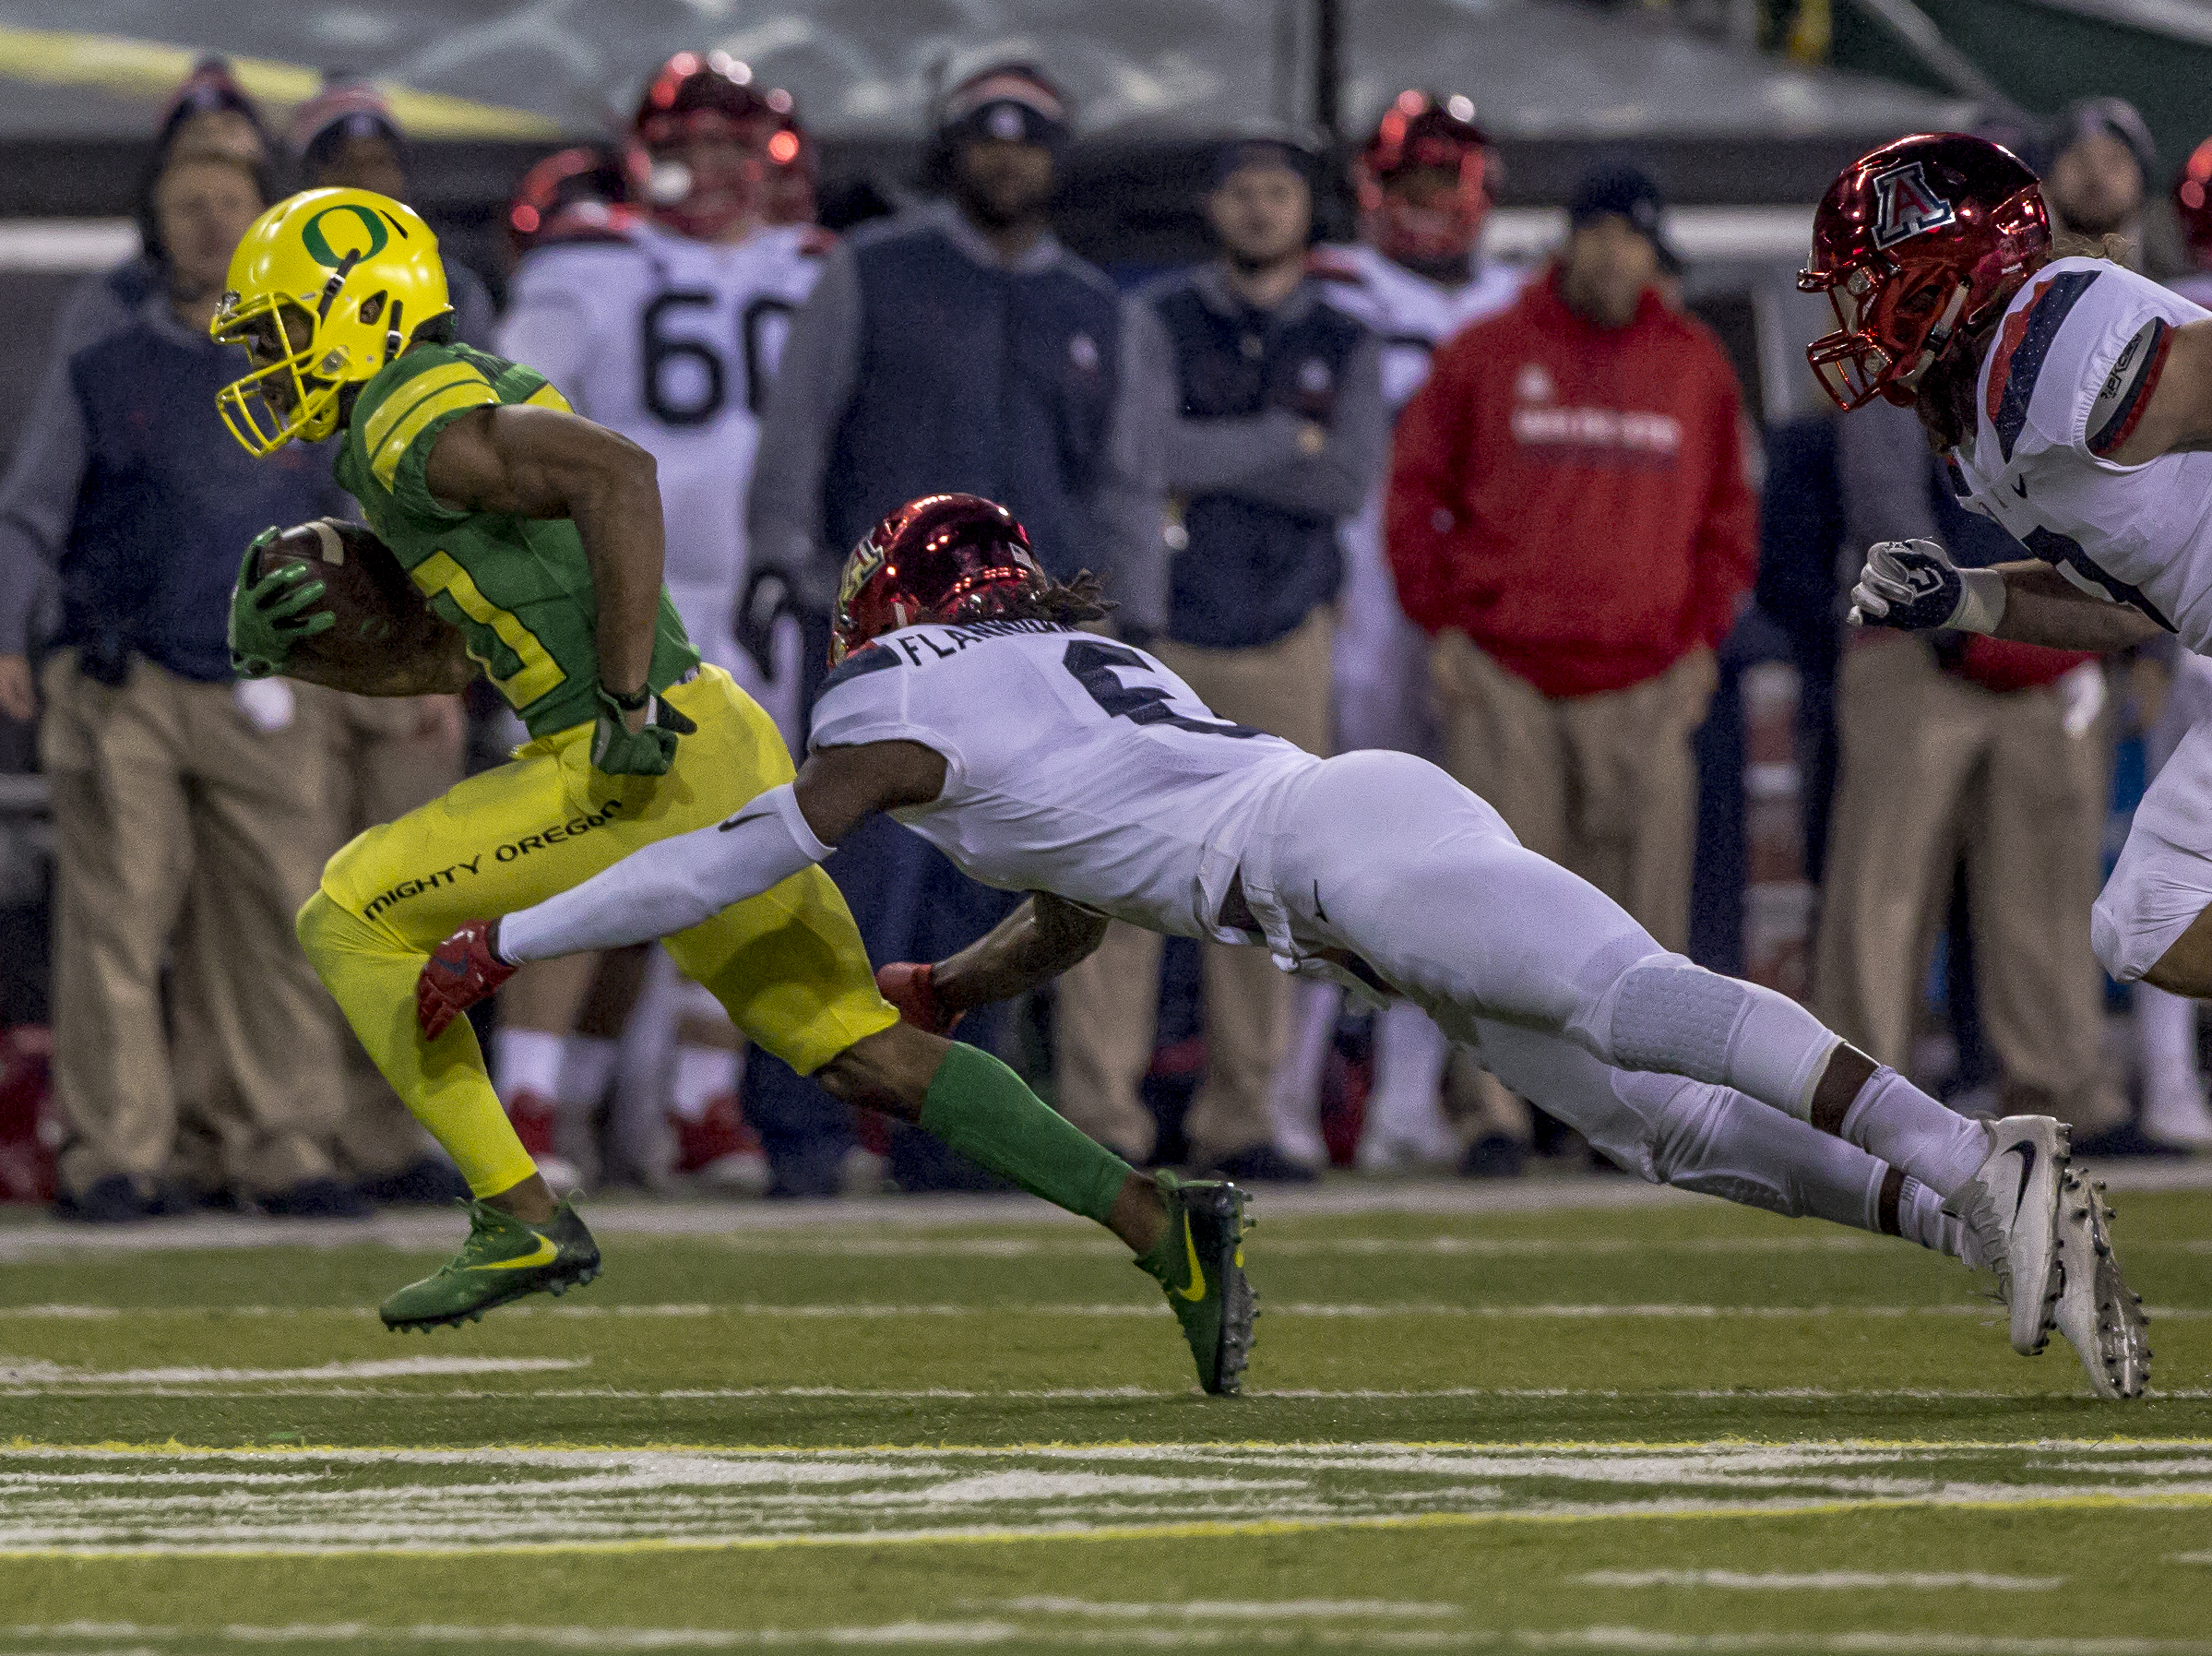 Oregon running back Tony Brooks-James (#20) sprints away from an Arizona defender. The Oregon Ducks defeated the Arizona Wildcats 48 to 28 during a chilly evening game at Autzen Stadium on November 18, 2017. Photo by Ben Lonergan, Oregon News Lab